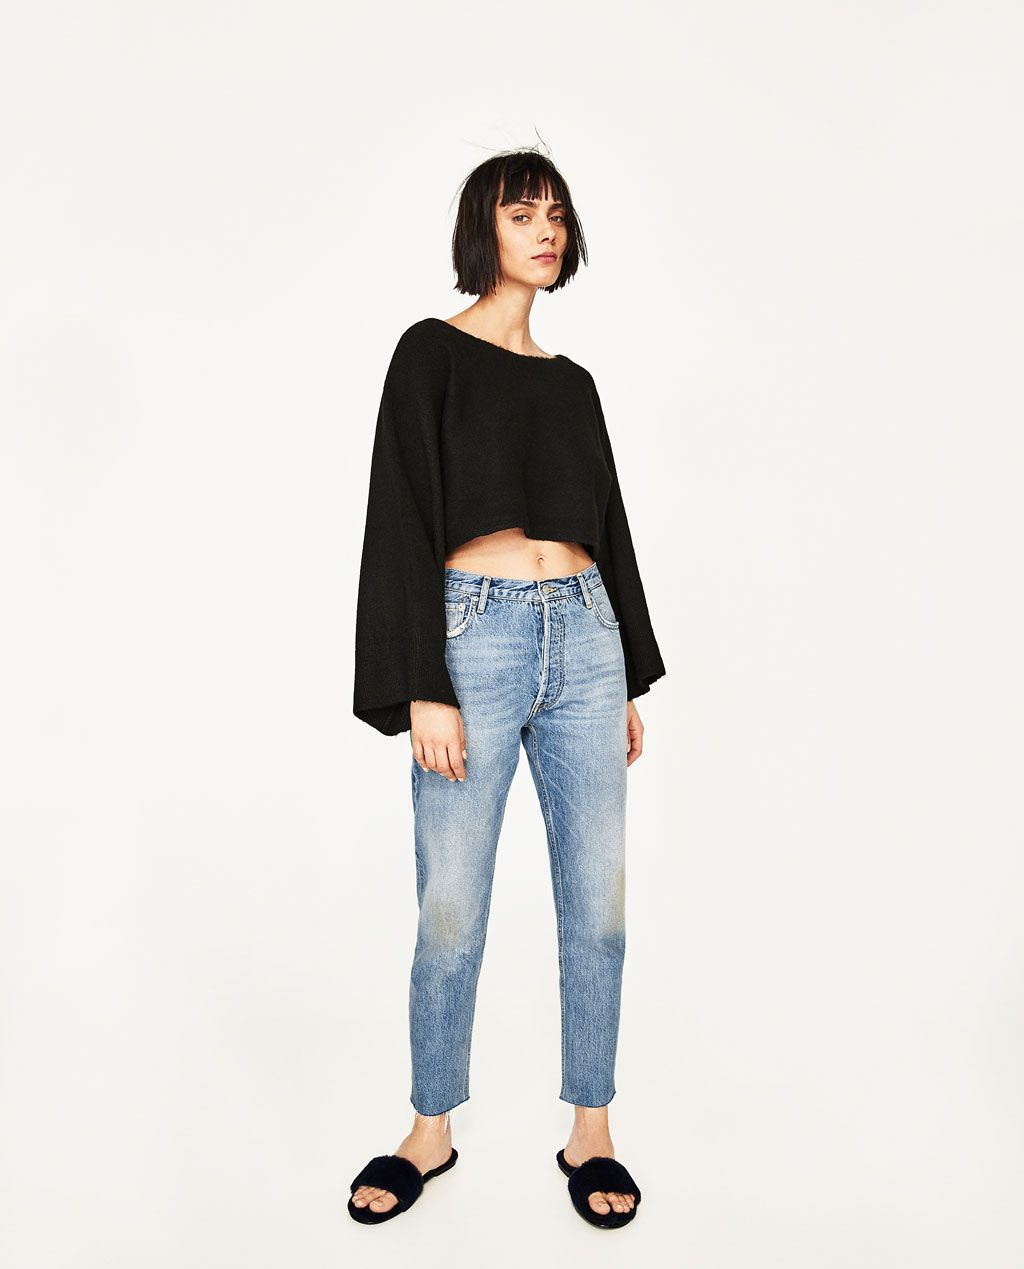 CROPPED SWEATER WITH WIDE SLEEVES-View All-KNITWEAR-WOMAN-SALE ...